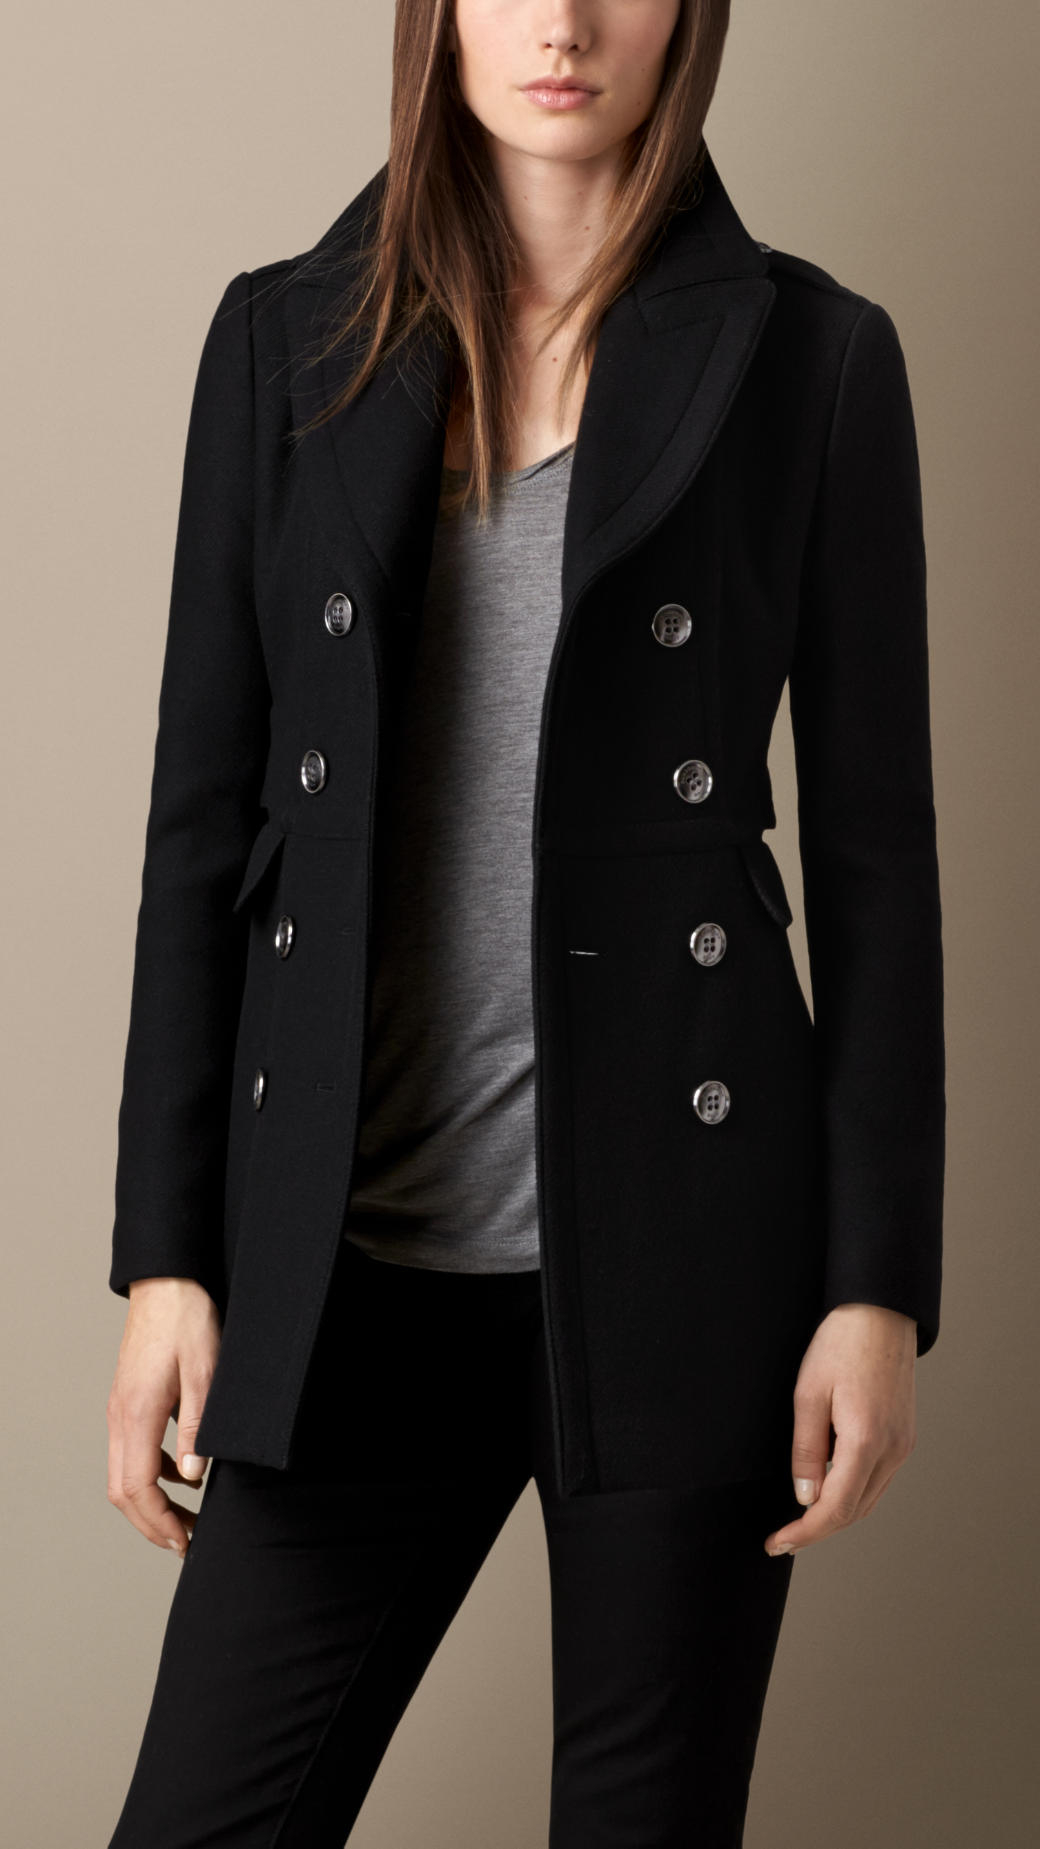 Fitted pea coat women